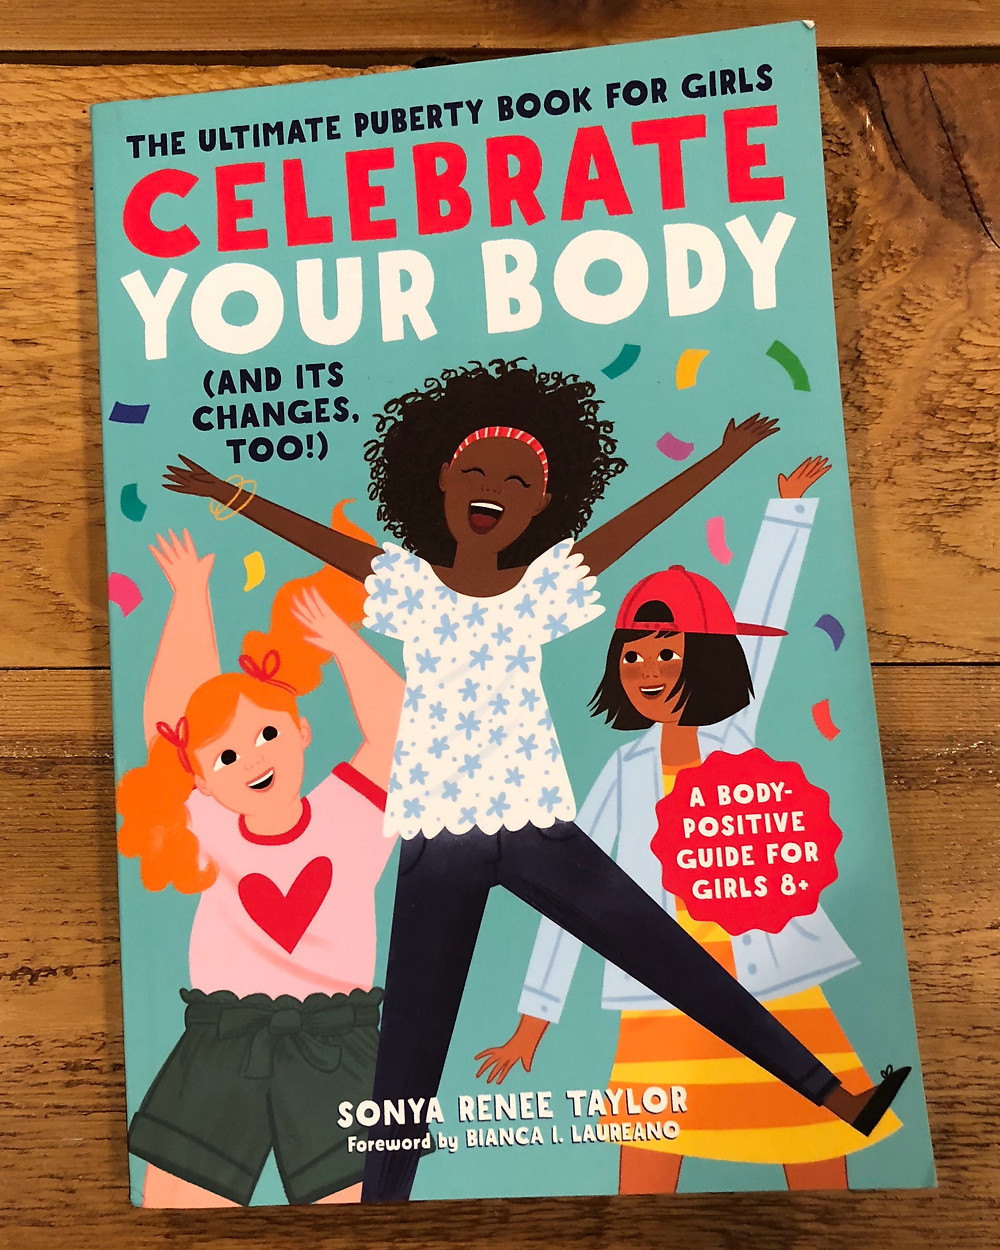 photo of book: The Ultimate Puberty Book for Girls: Celebrate Your Body